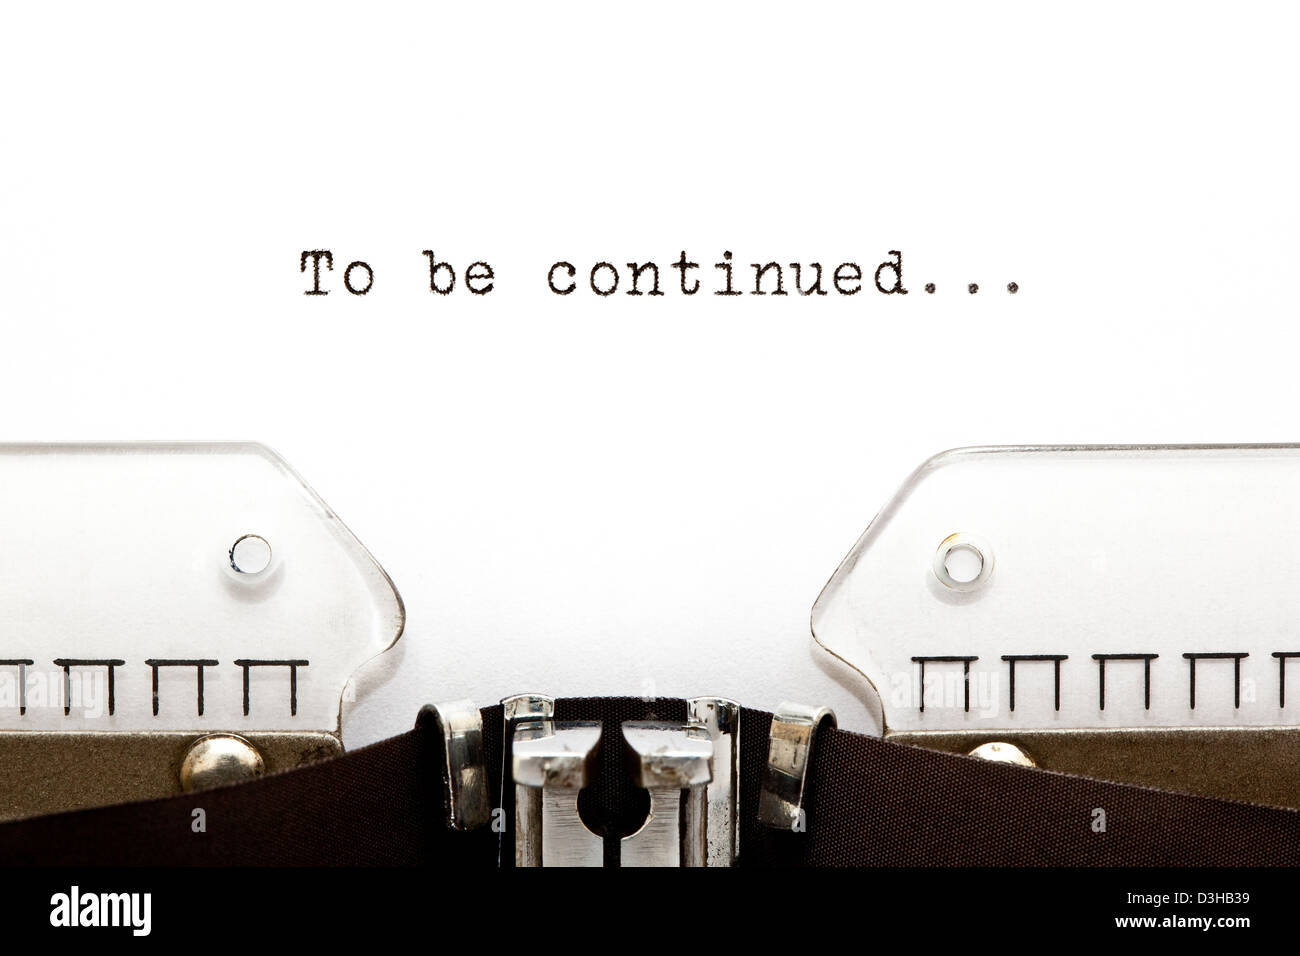 To Be Continued printed on an old typewriter. Stock Photo